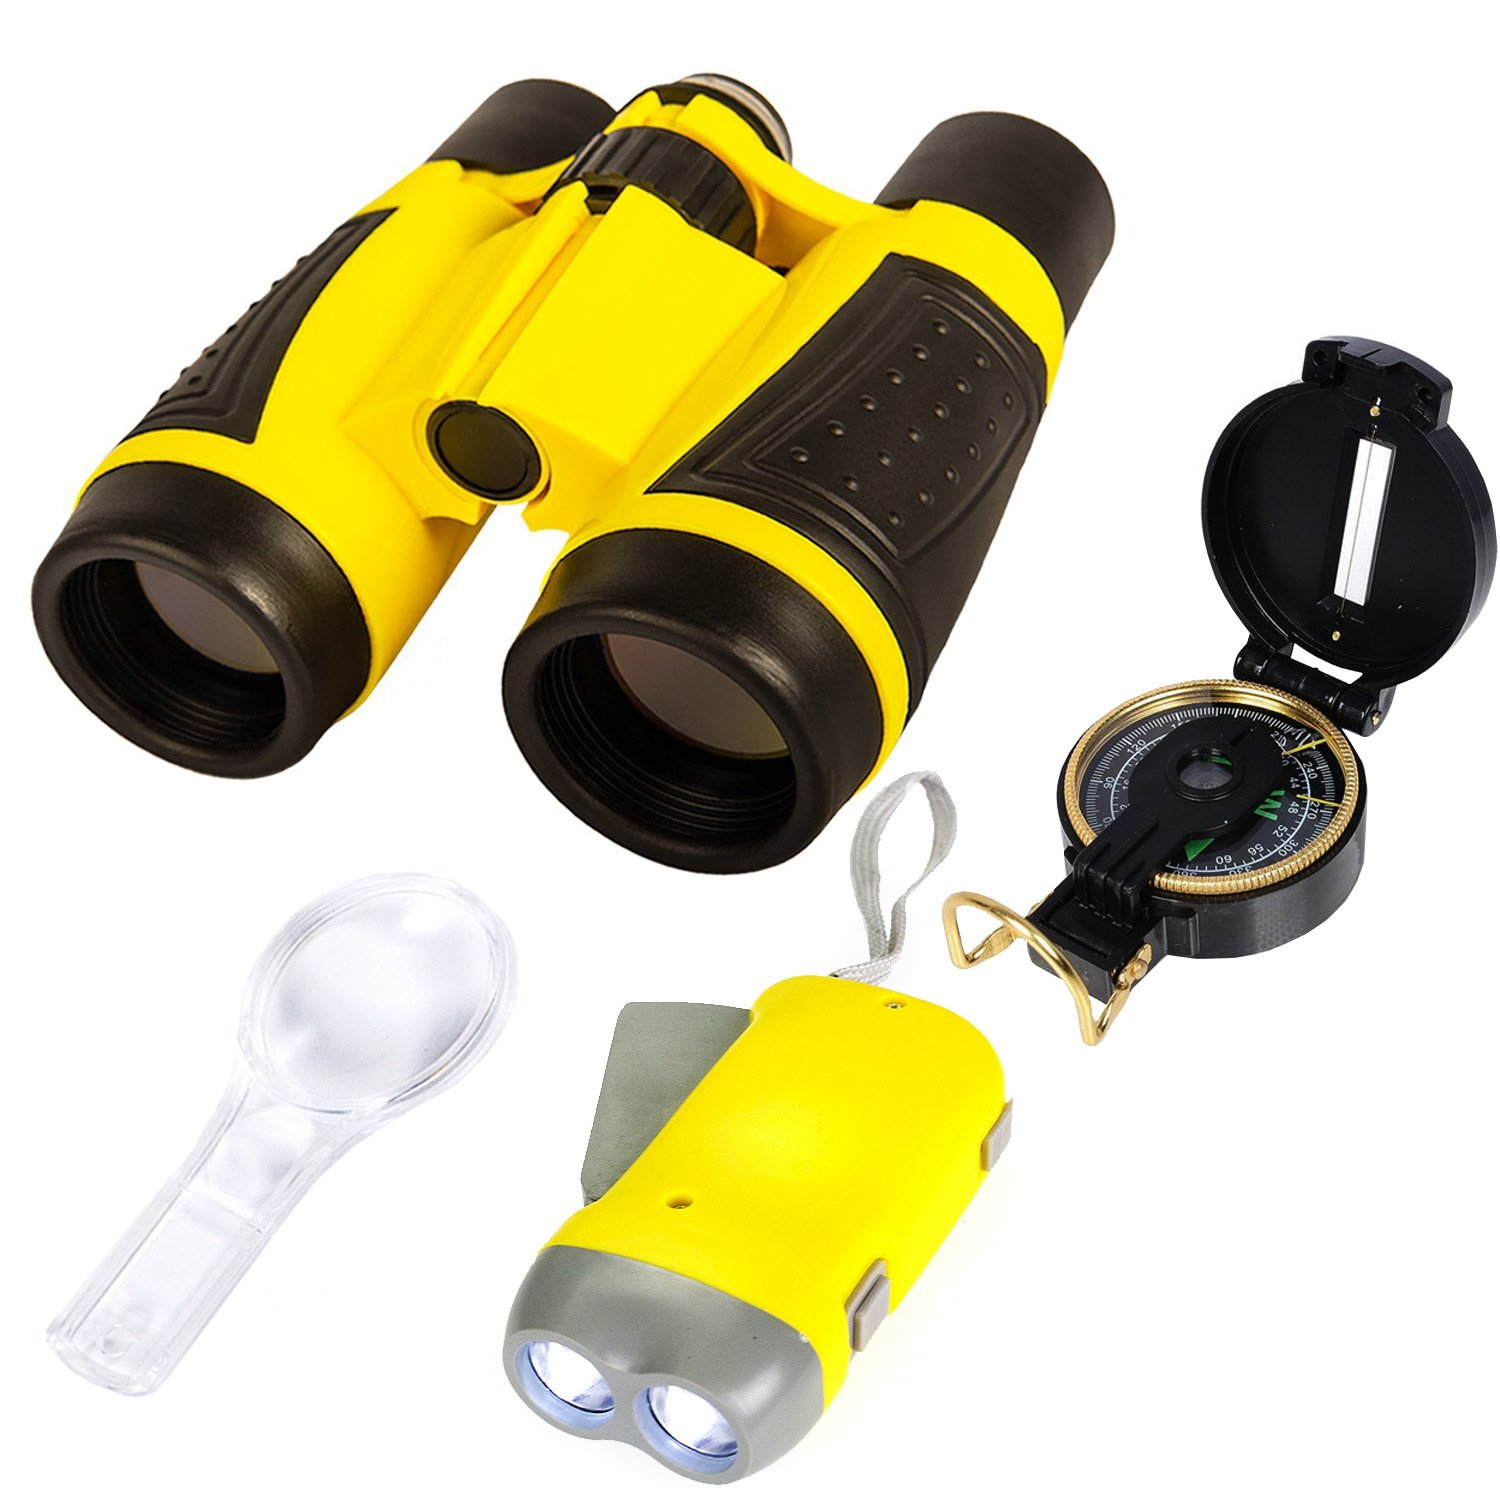 Nature Exploration Adventure Toys | 5 PC Outdoor Adventure Set | Compass, Magnifying Glass, Flashlight, Backpack & Binoculars For Kids | Educational Outdoor Toys for Kids